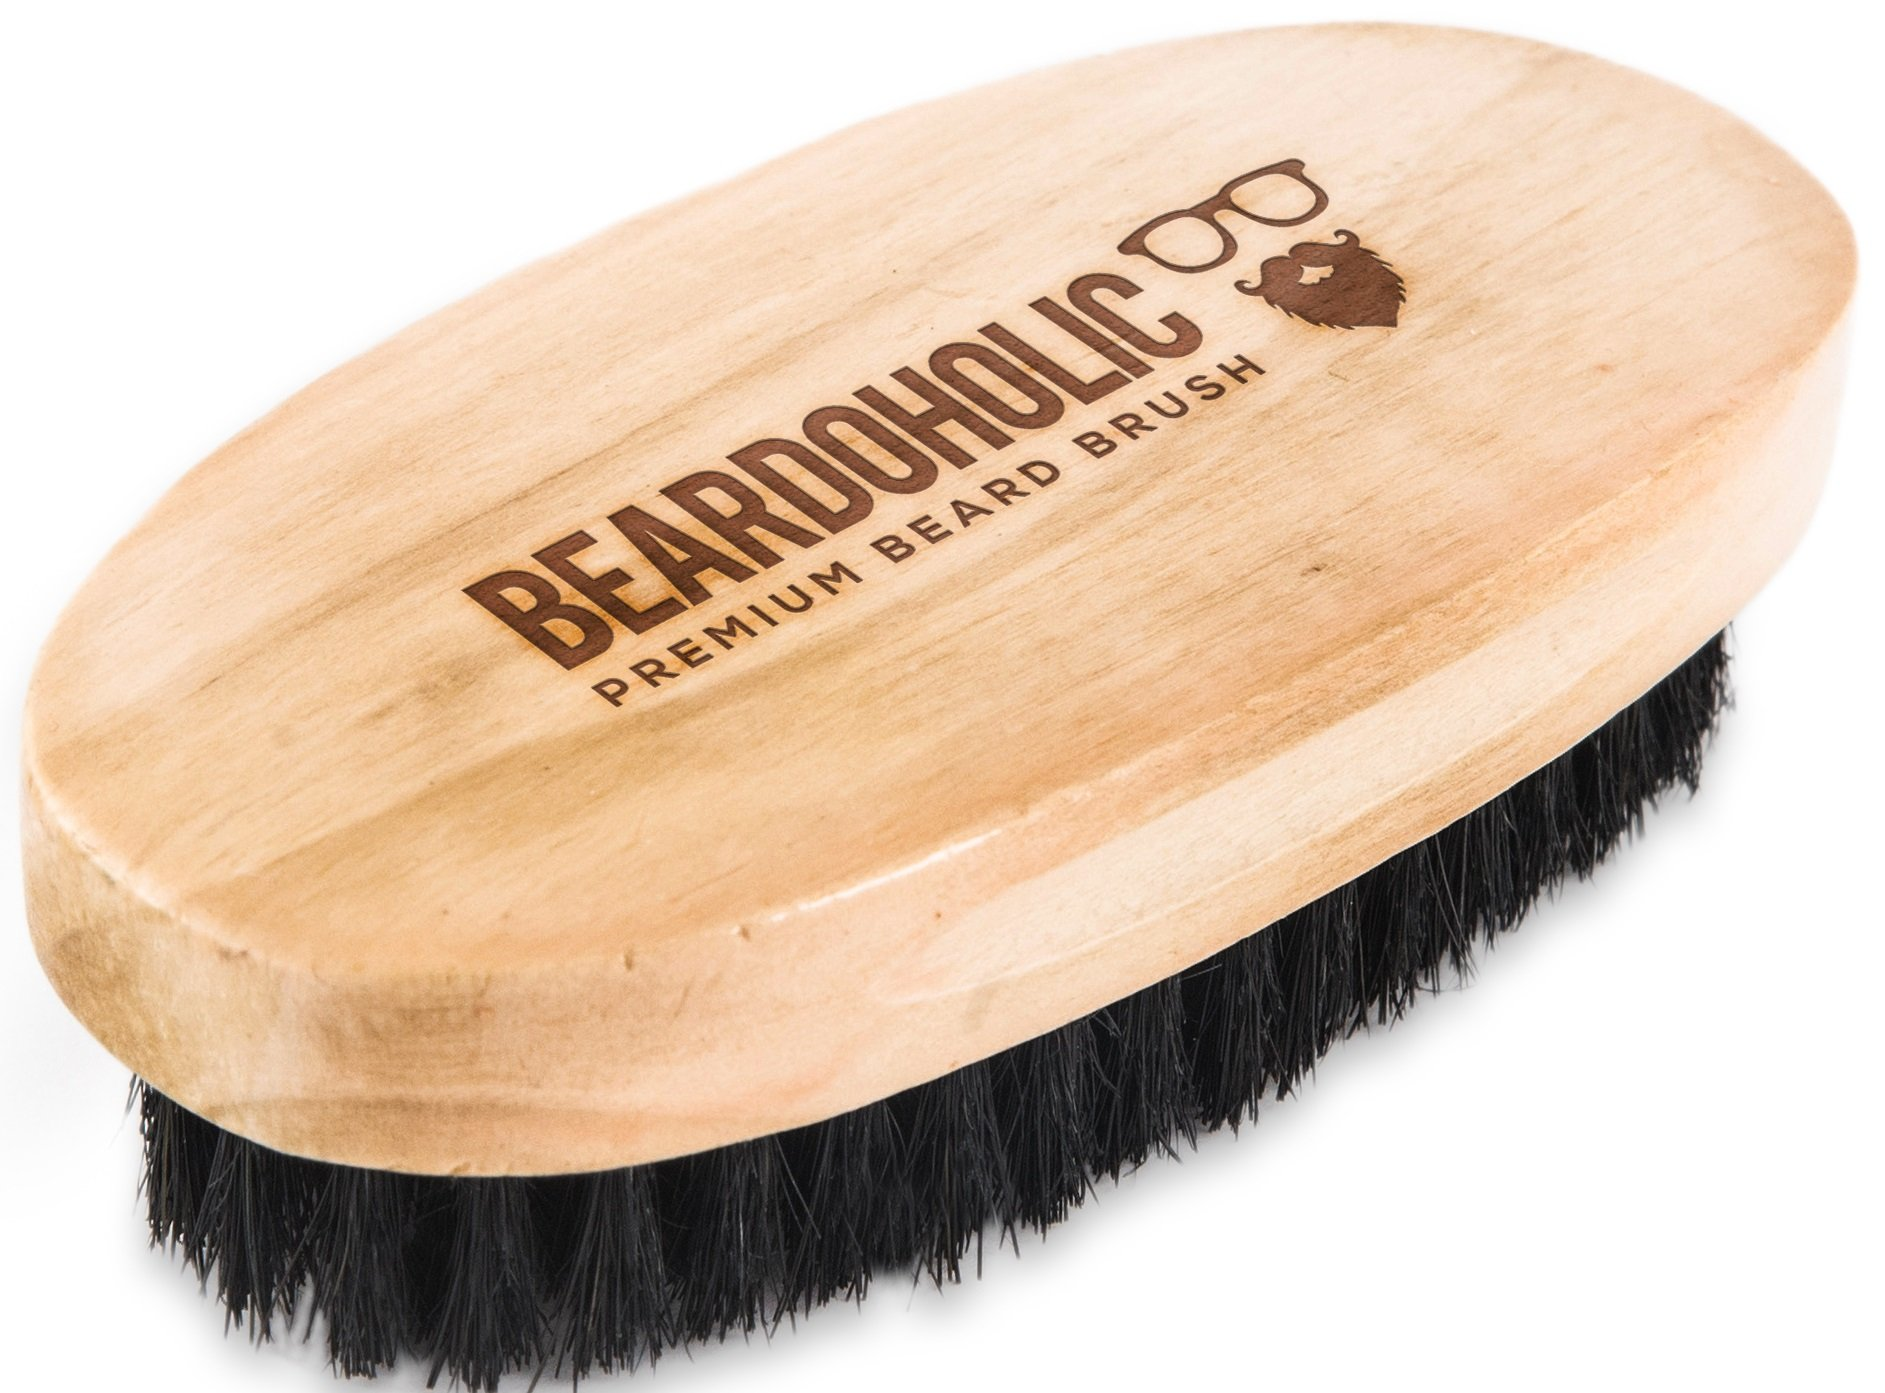 Beardoholic Boar Hair Brush - Professional Barber Brush for Grooming, Detangling and Beard Health - Conditions and Evenly Distributes Natural Oils - Portable, Great Gift for Bearded Men - Bamboo Wood